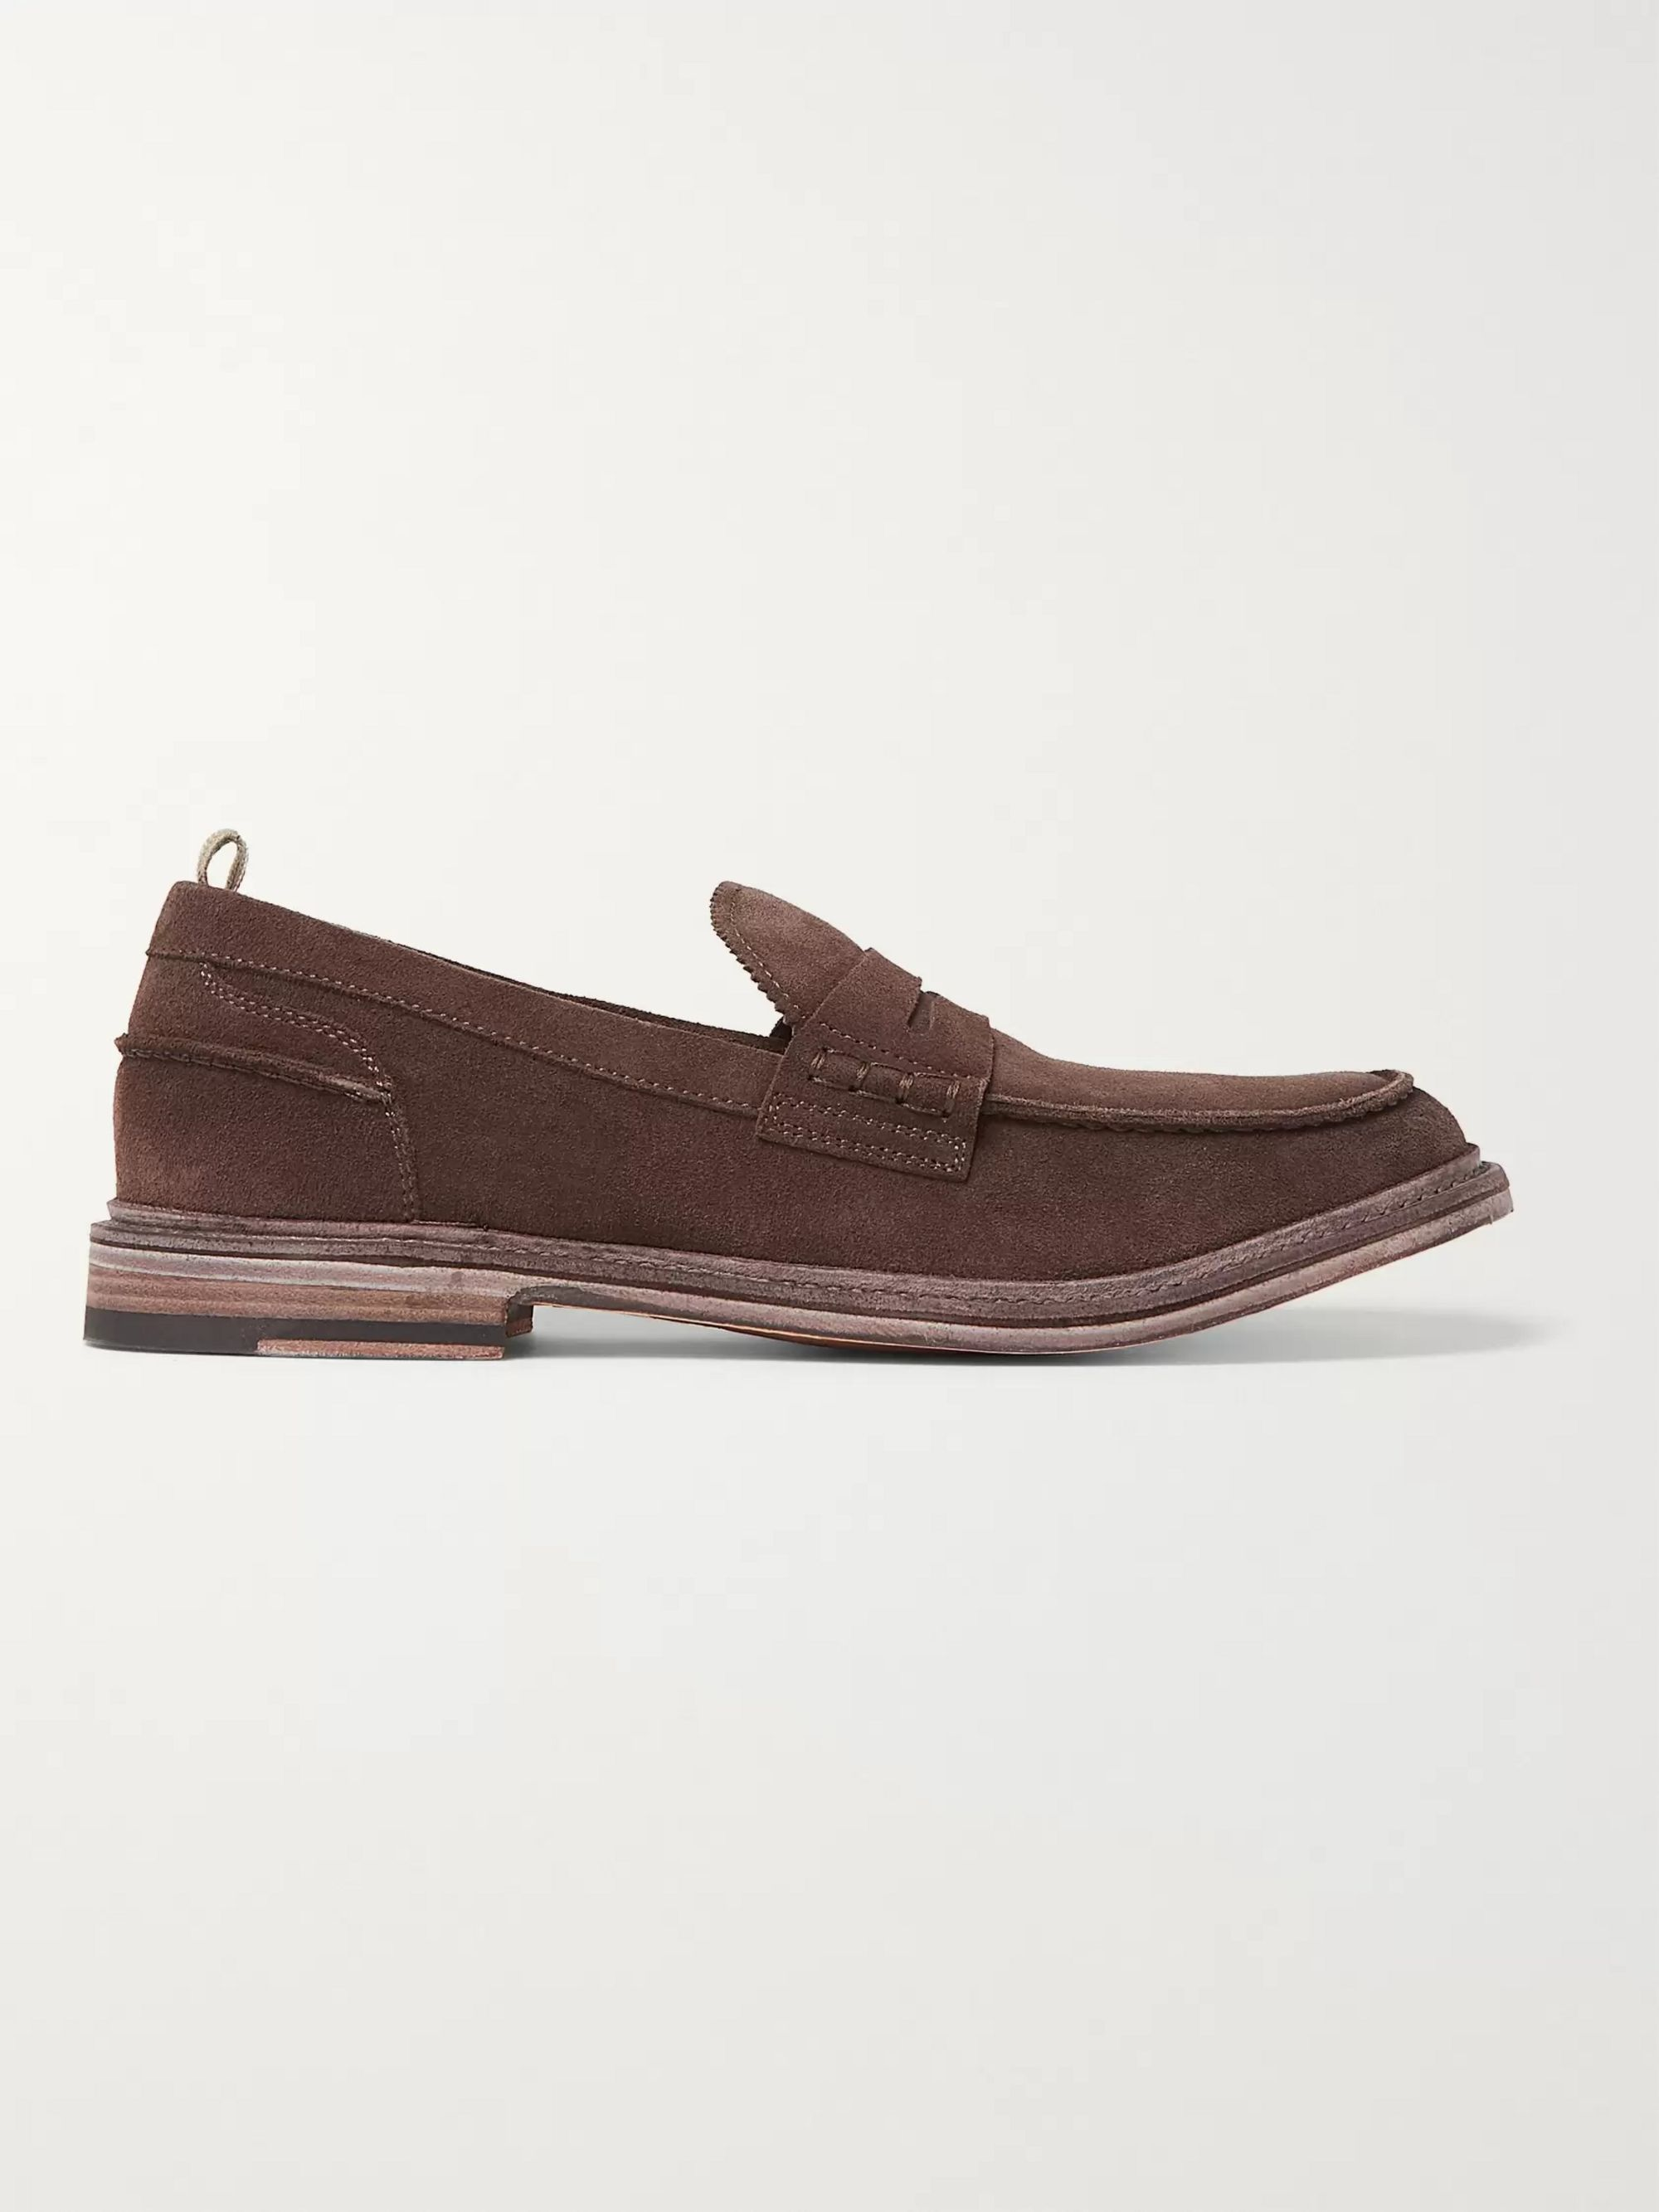 Officine Creative Durham Suede Penny Loafers